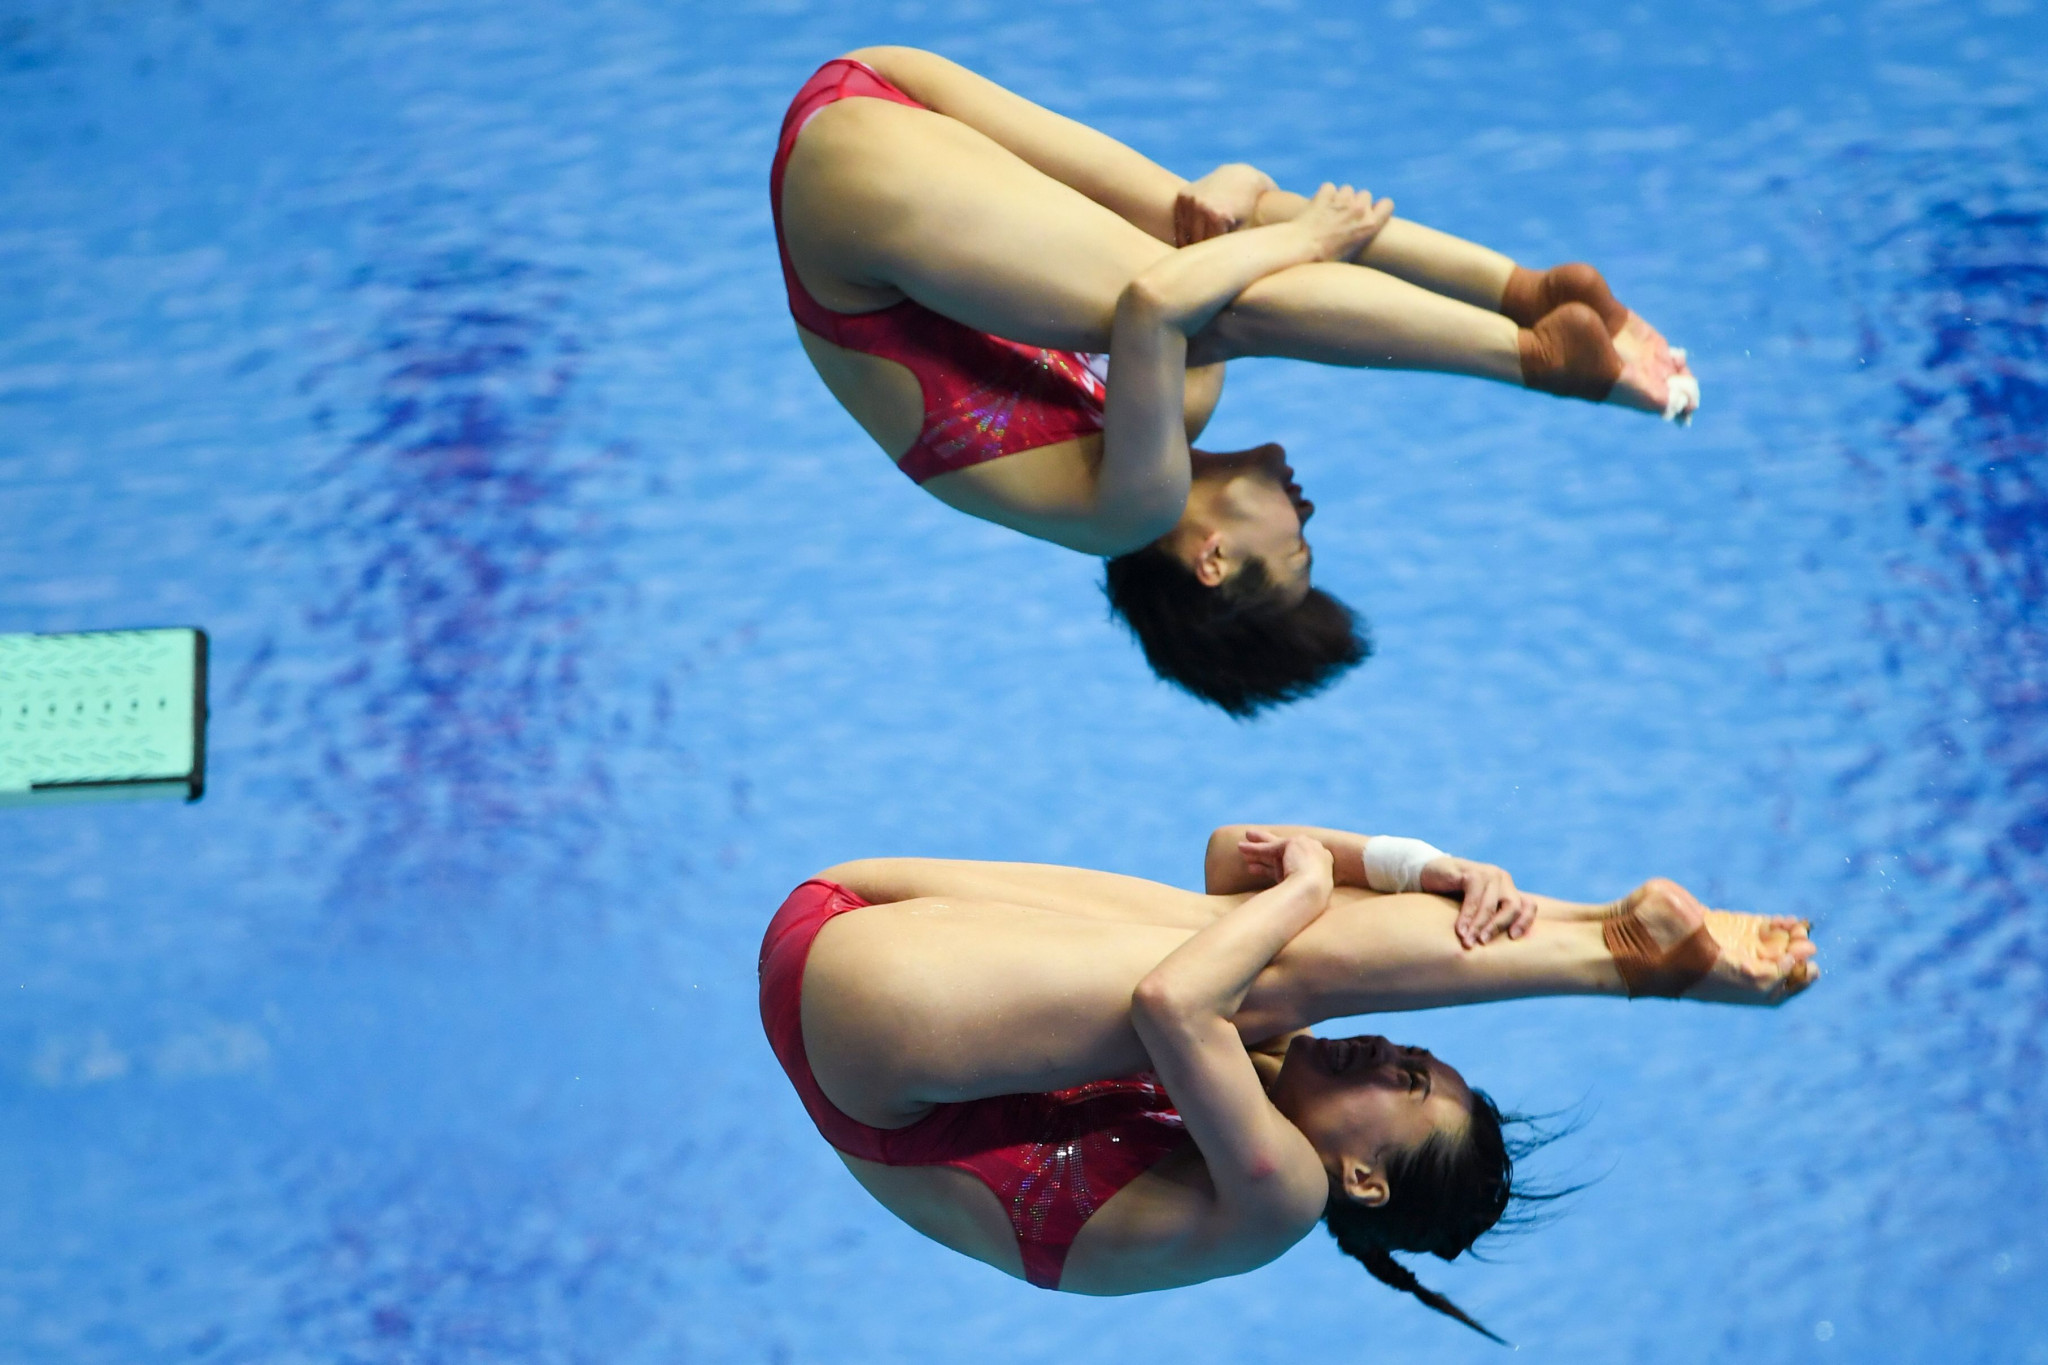 Wang Han and Shi Tingmao added to China's diving dominance in Gwangju ©Getty Images